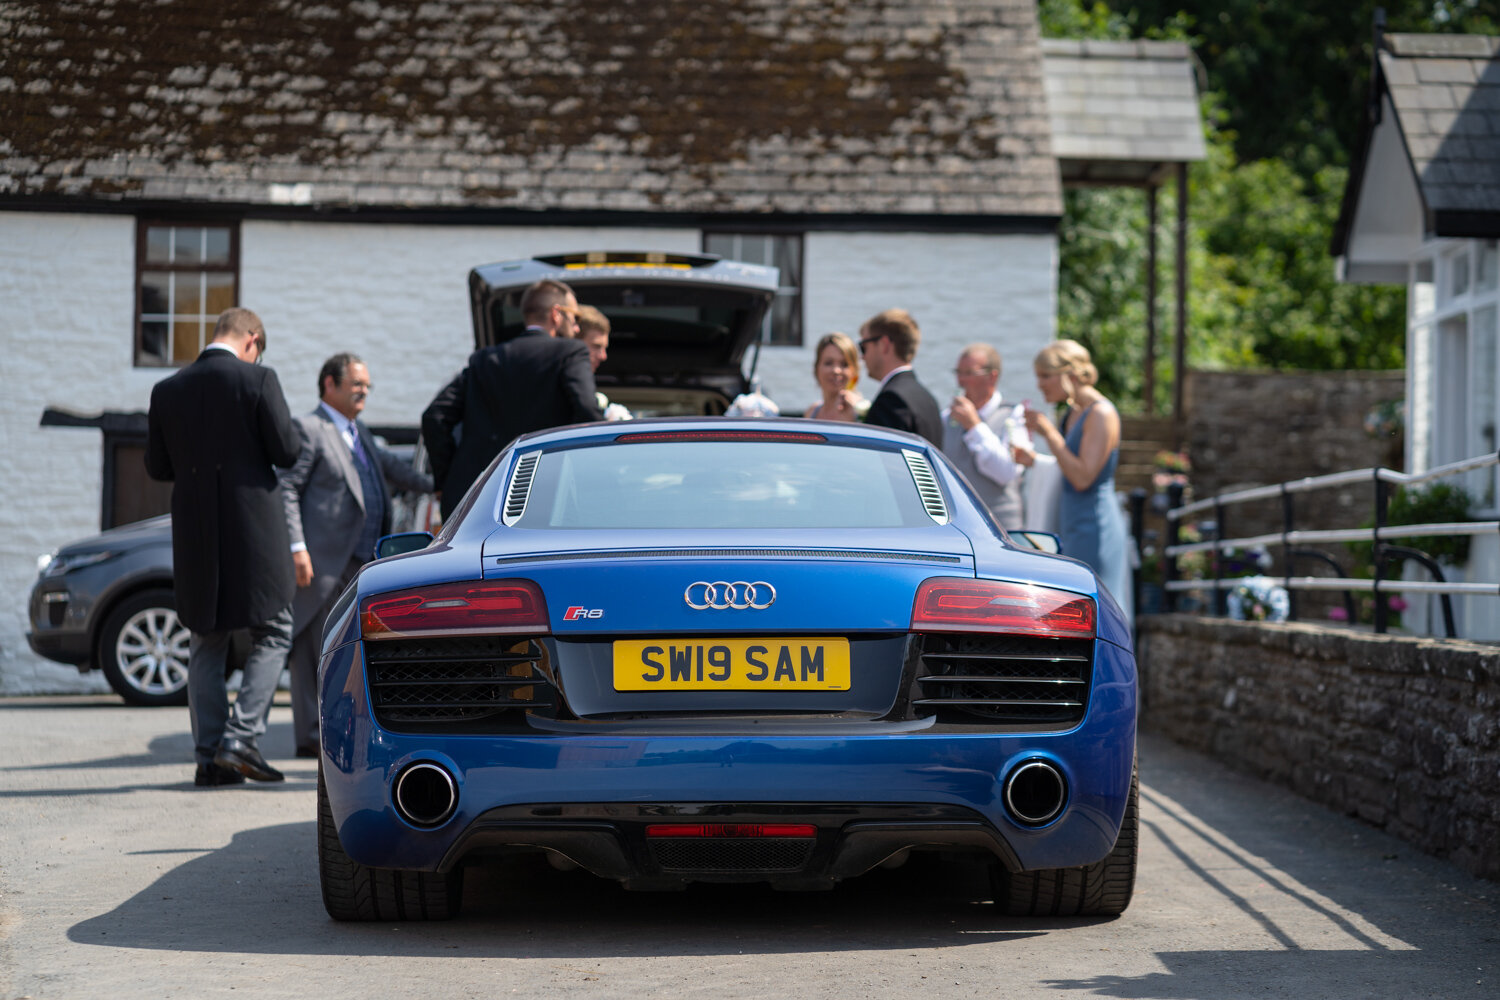 Audi R8 wedding car at Powys wedding